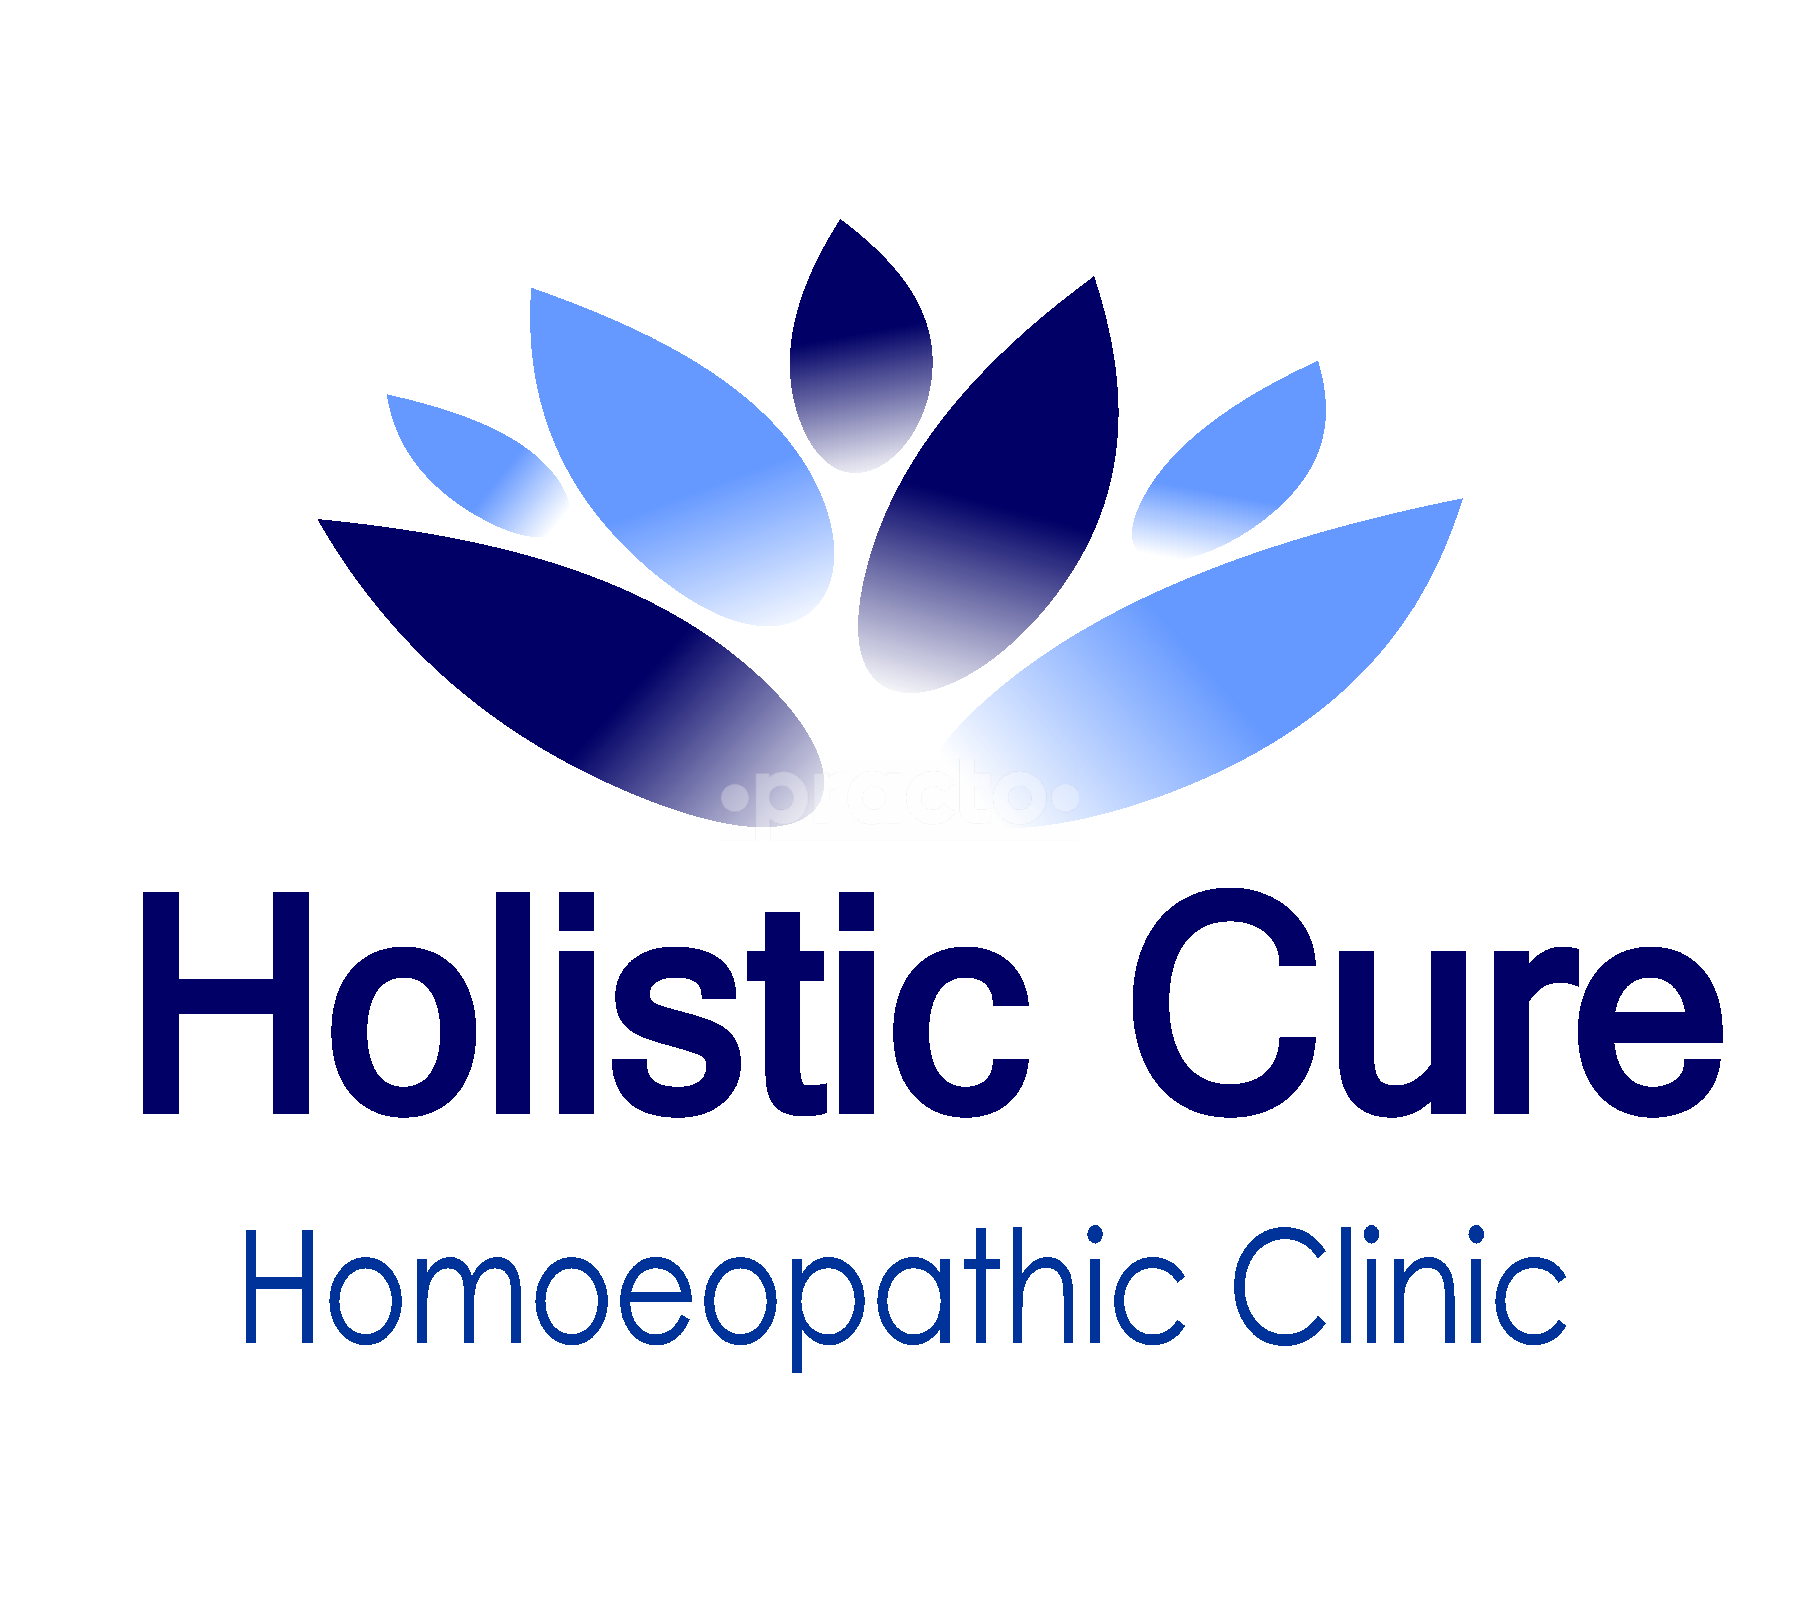 Holistic Cure Homeopathic Clinic